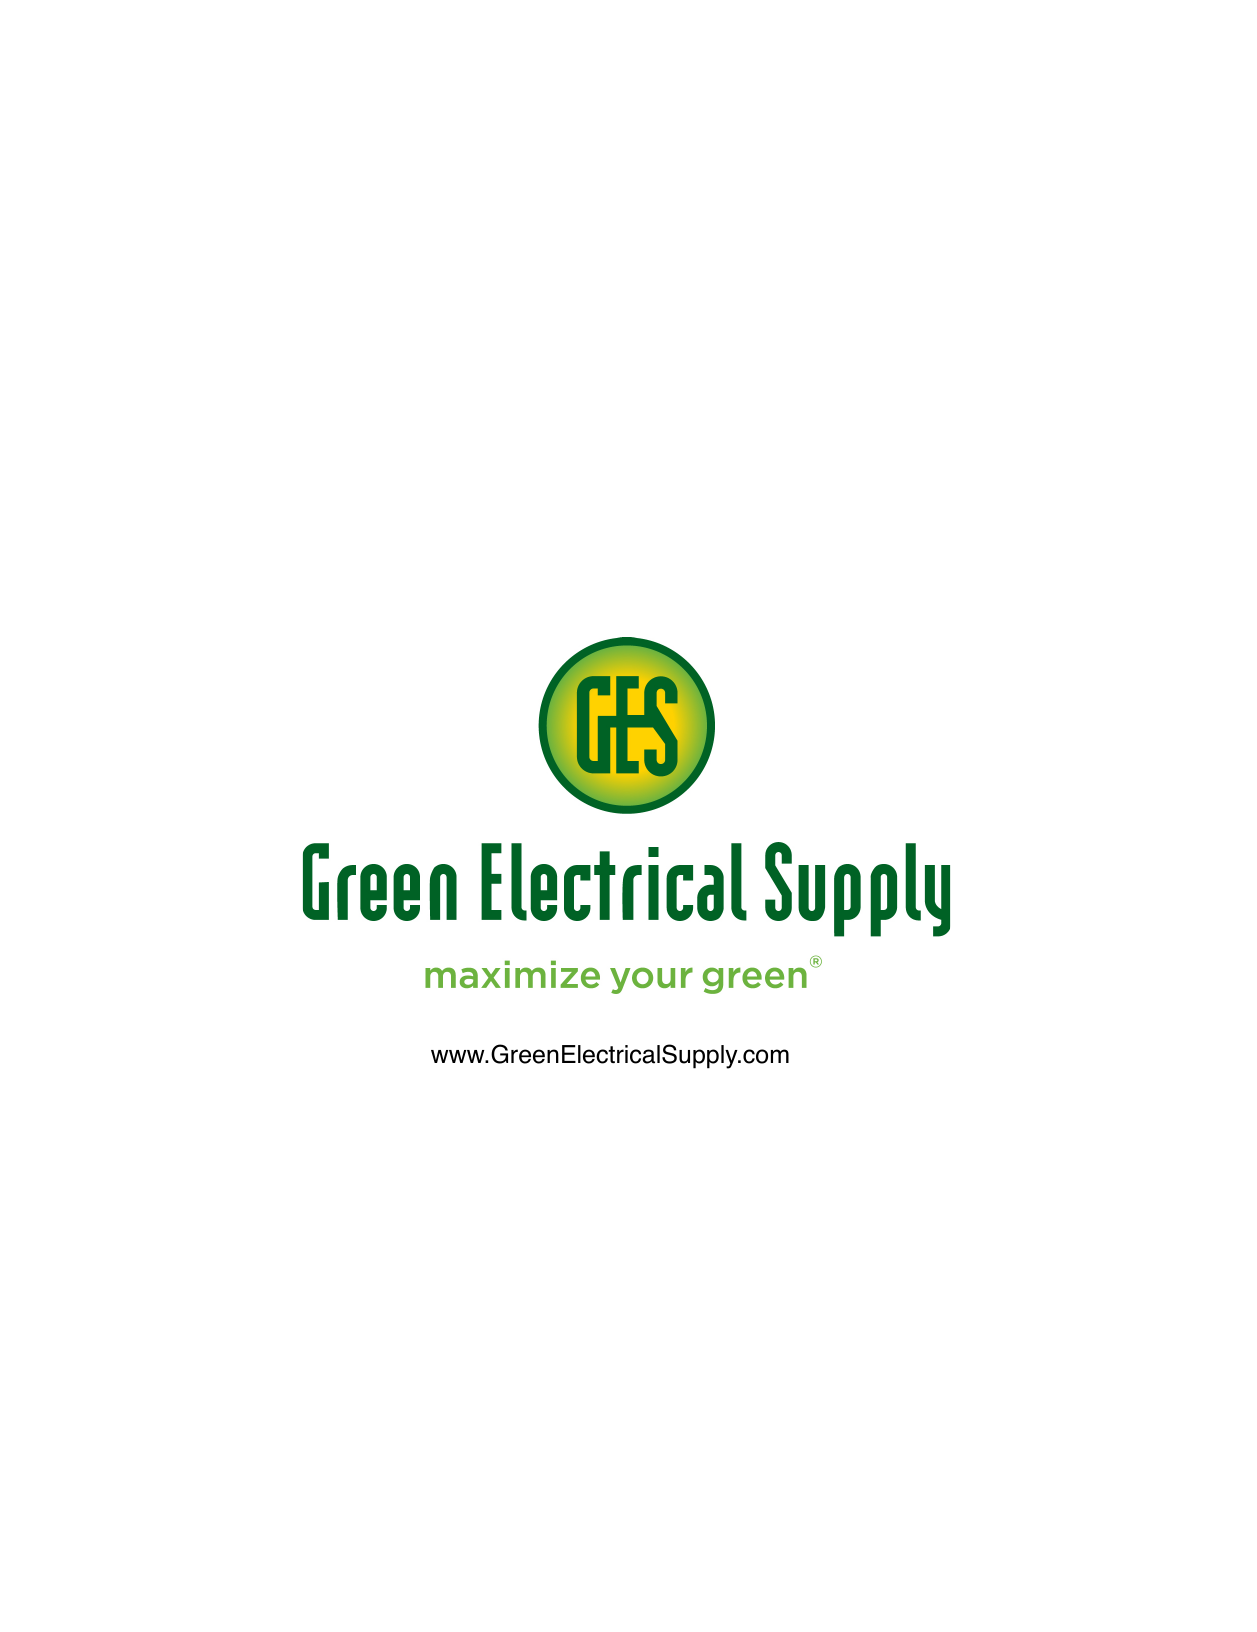 018783127_1 35cc383a85fed8814c552096dd773258 ballast cross reference green electrical supply asb-2040-24-bl-tp wiring diagram at reclaimingppi.co